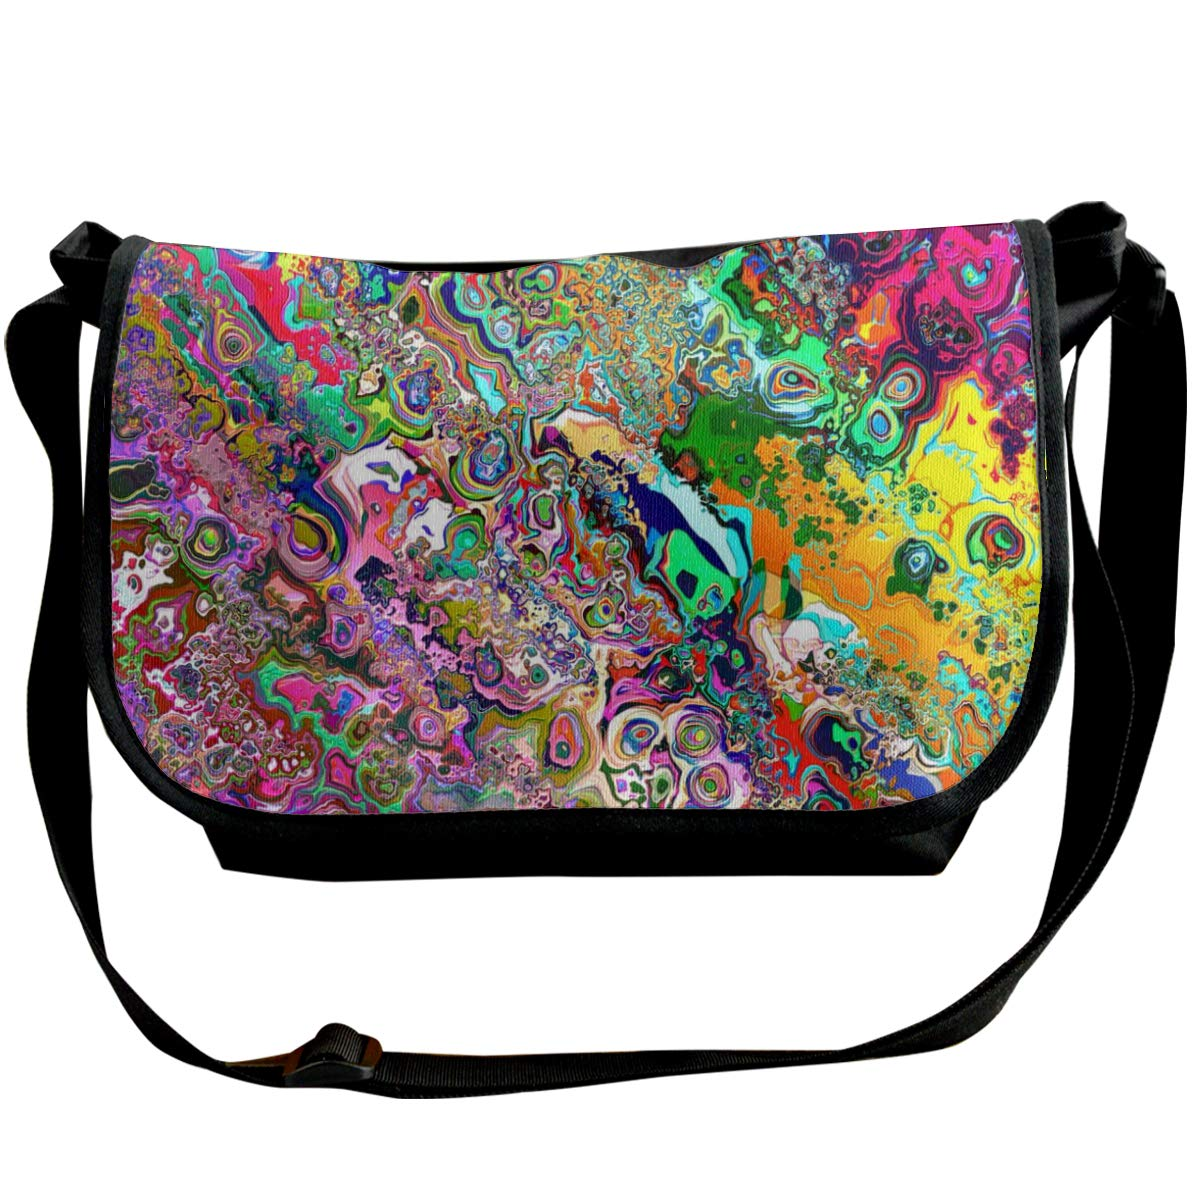 Psychedelic Background Unisex Crossbody Single Shoulder Bag With Shoulder Girdle Cellphone Pouch Purse Wallet